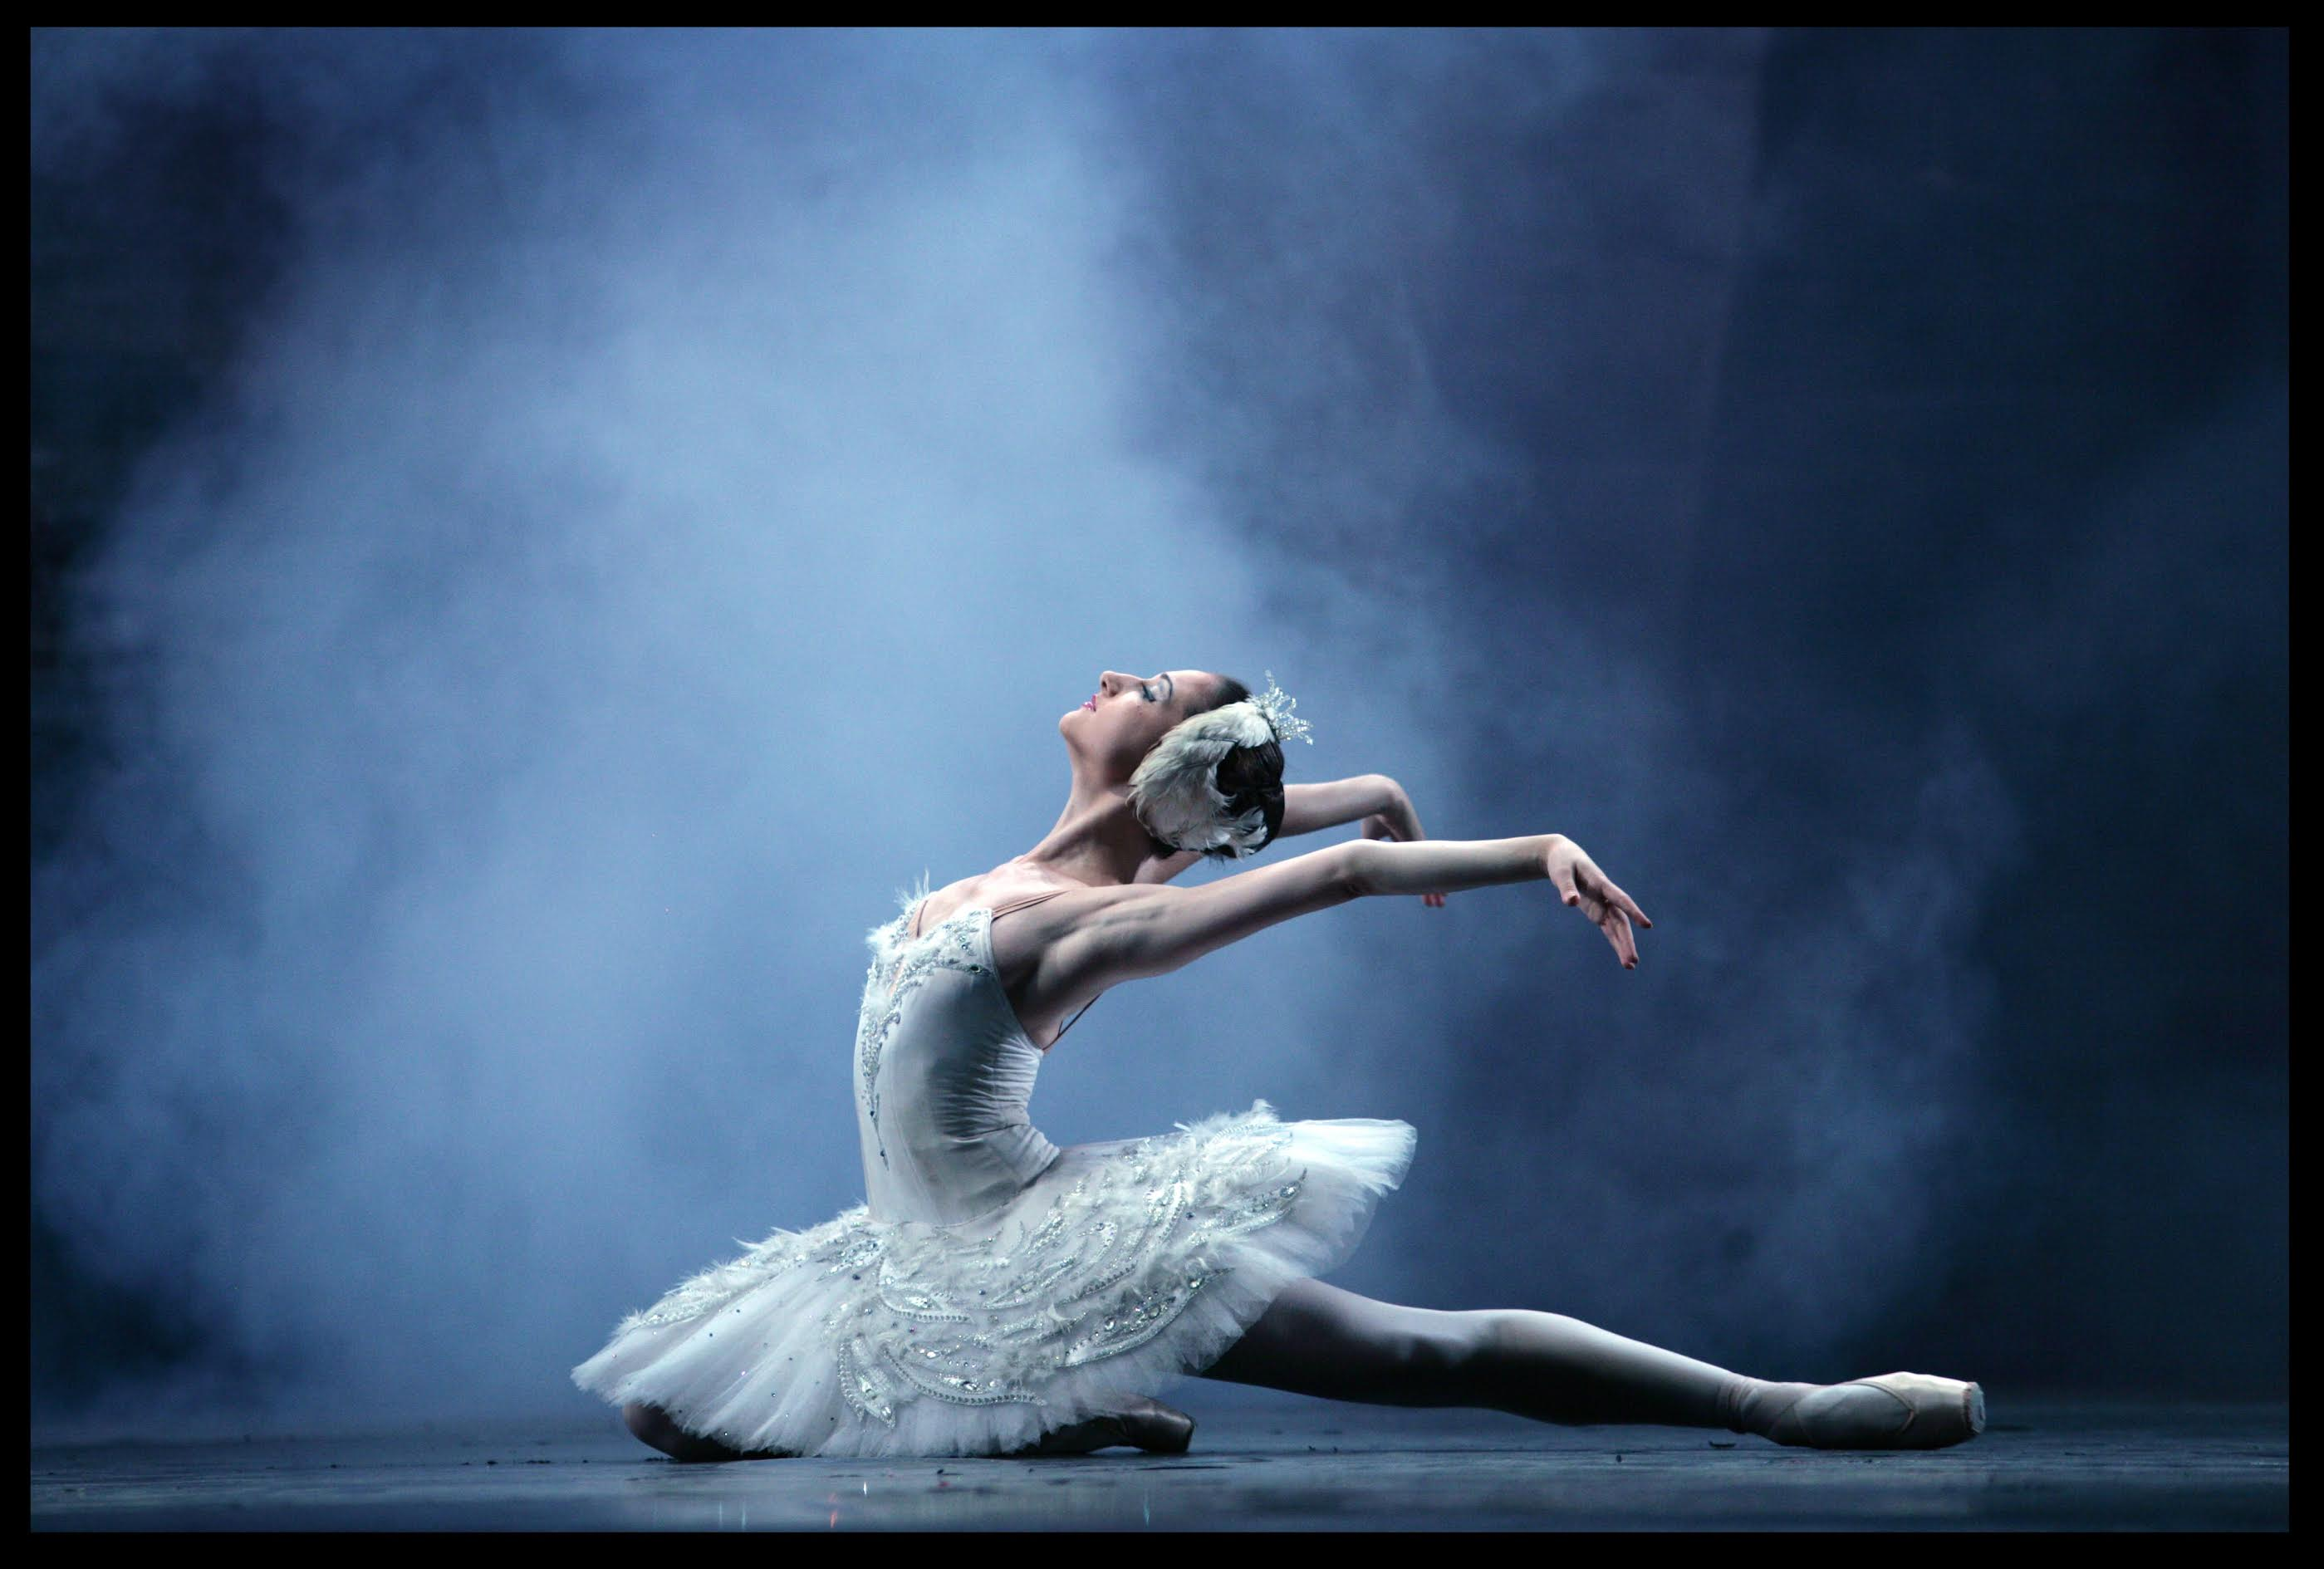 LAC DES CYGNES - THE MOSCOW CITY BALLET